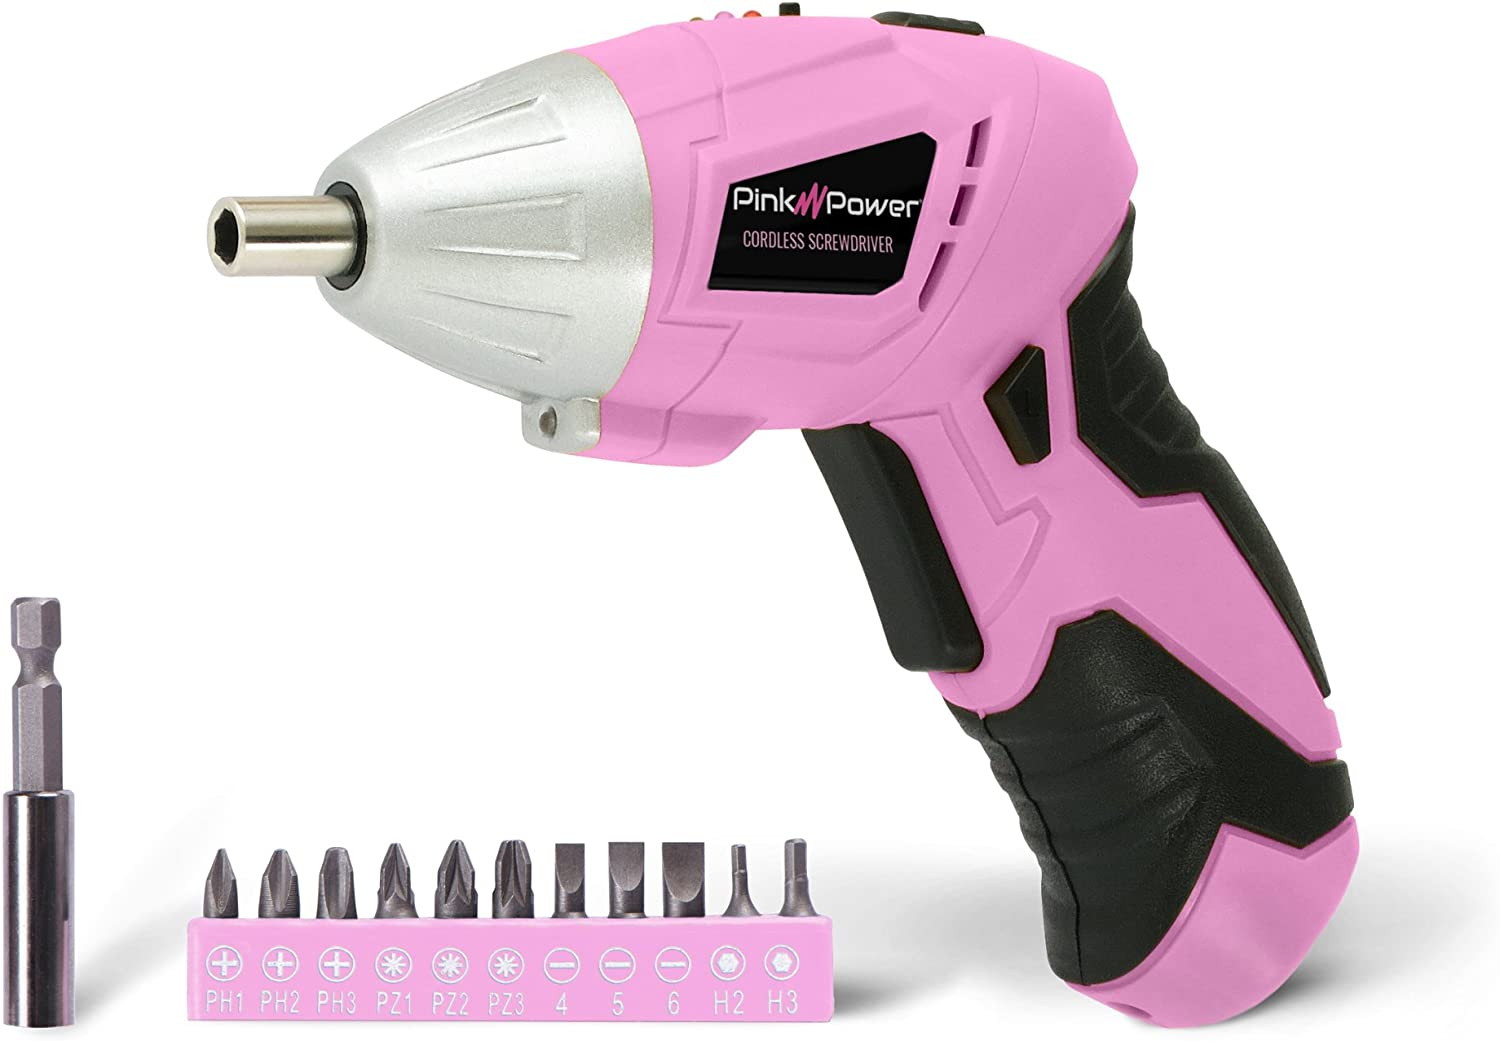 Pink Power PP481 3.6 Volt Cordless Electric Screwdriver Rechargeable Screw Gun & Bit Set for Women - LED light, Battery Indicator and Pivoting Head